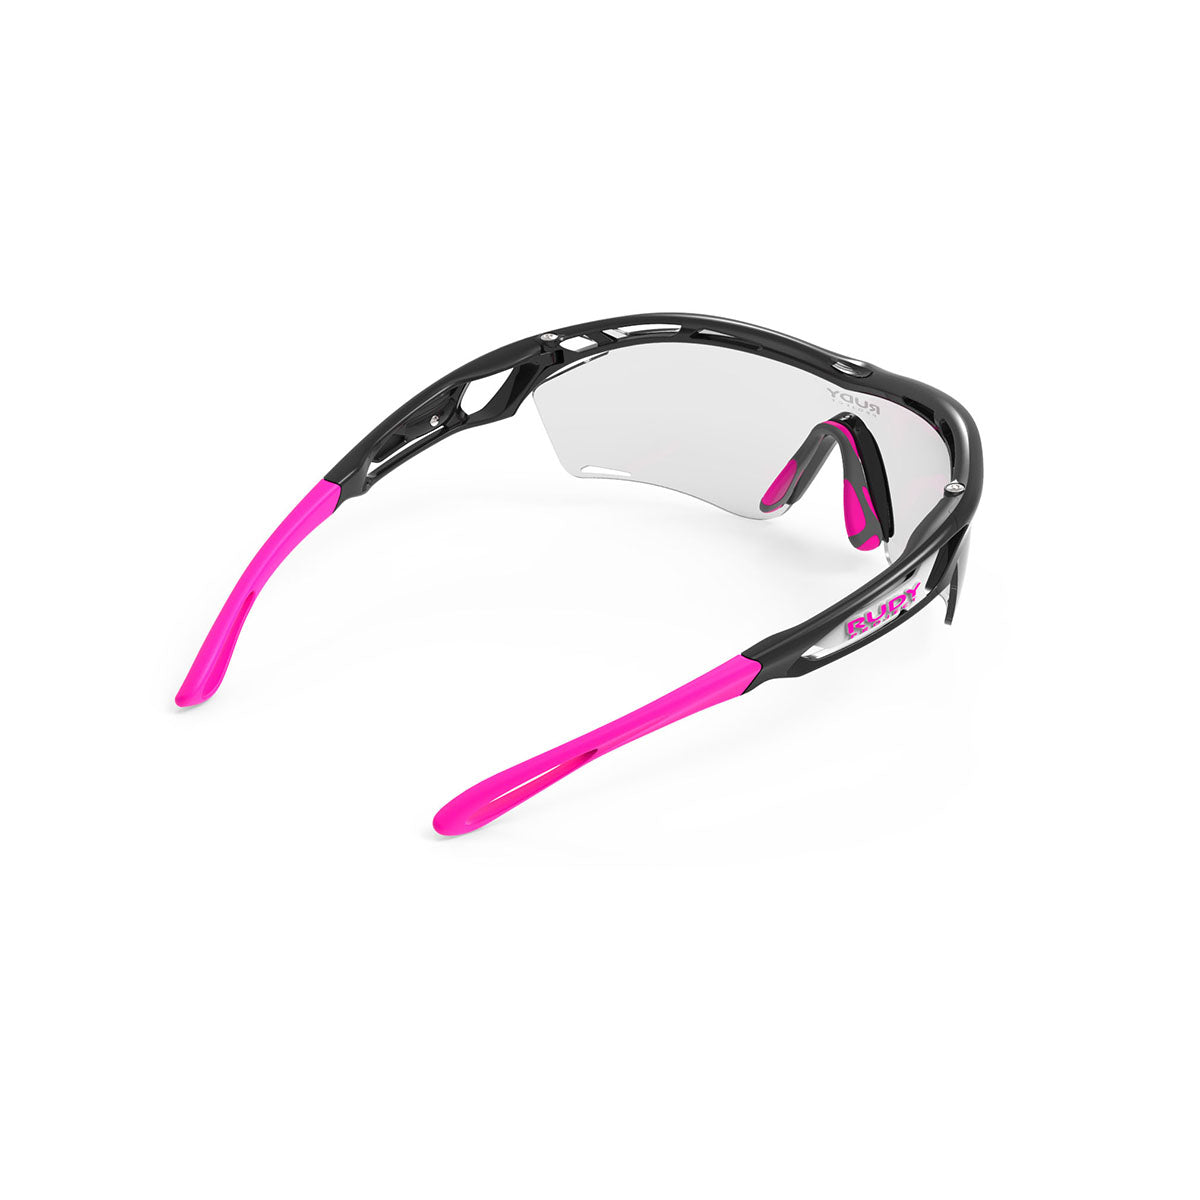 Rudy Project - Tralyx Golf - frame color: Matte Black - lens color: ImpactX-2 Photochromic Laser Purple - photo angle: Top Back Angle Variant Hover Image